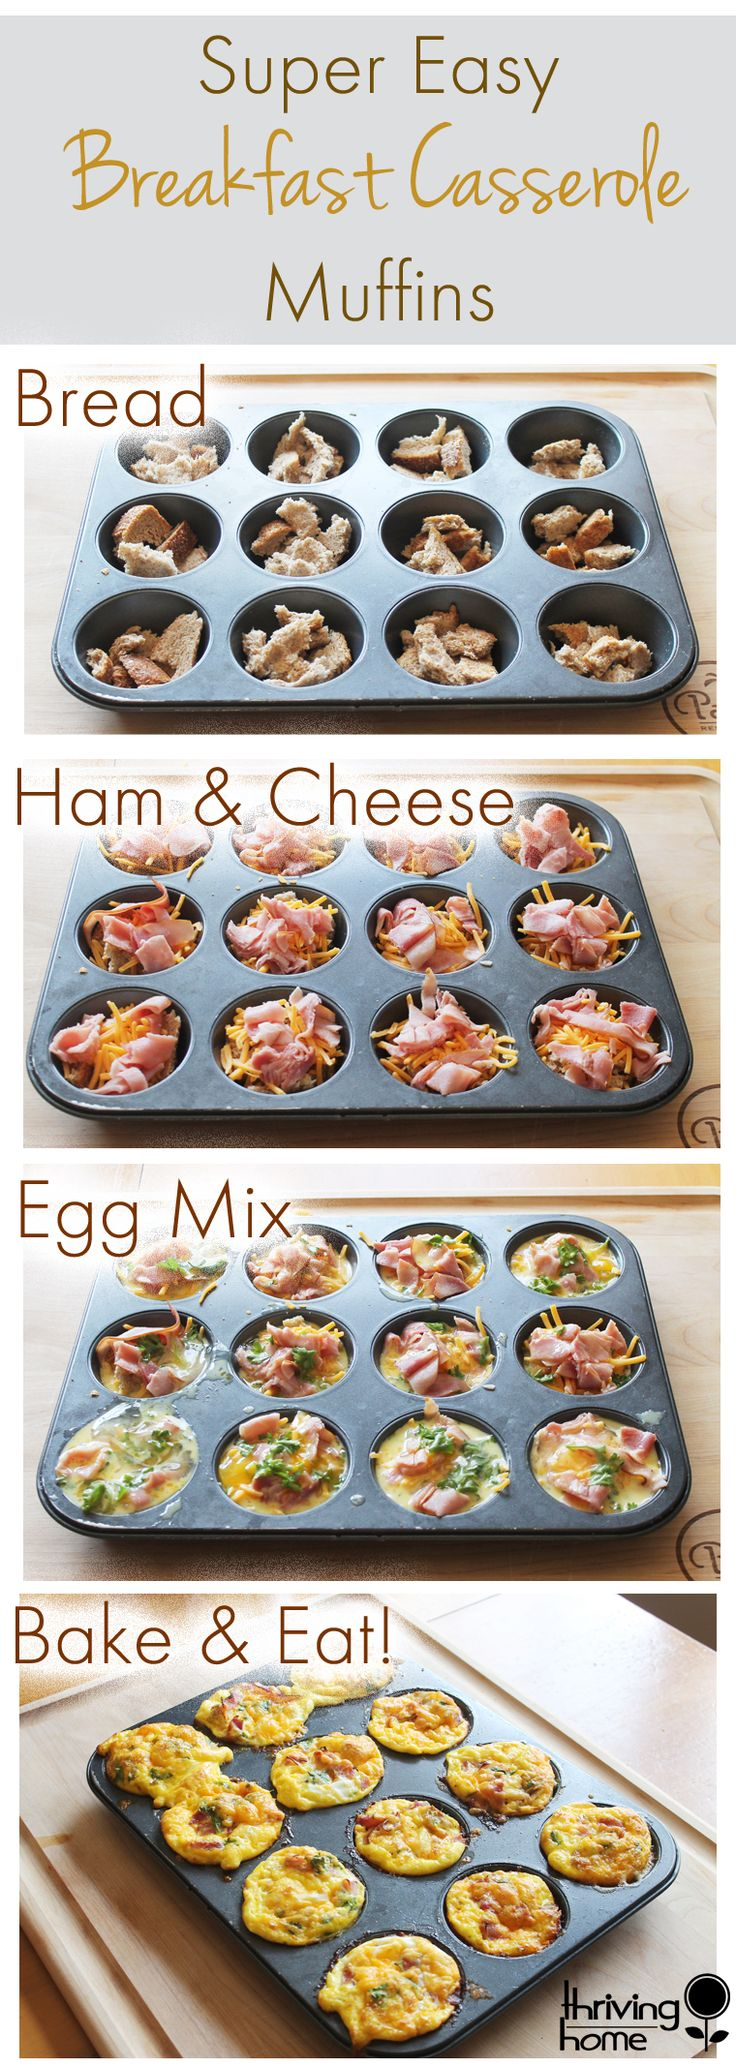 Ingredients  3-4 pieces whole wheat bread, torn into small pieces (enough to fill muffin tins almost to top) 3-4 slices deli ham (look for preservative-free) 1 cup shredded cheddar cheese 8 eggs 1 cup milk 2 teaspoons ground mustard 1 teaspoon ground pepper (or more or less to taste) dried Parsley